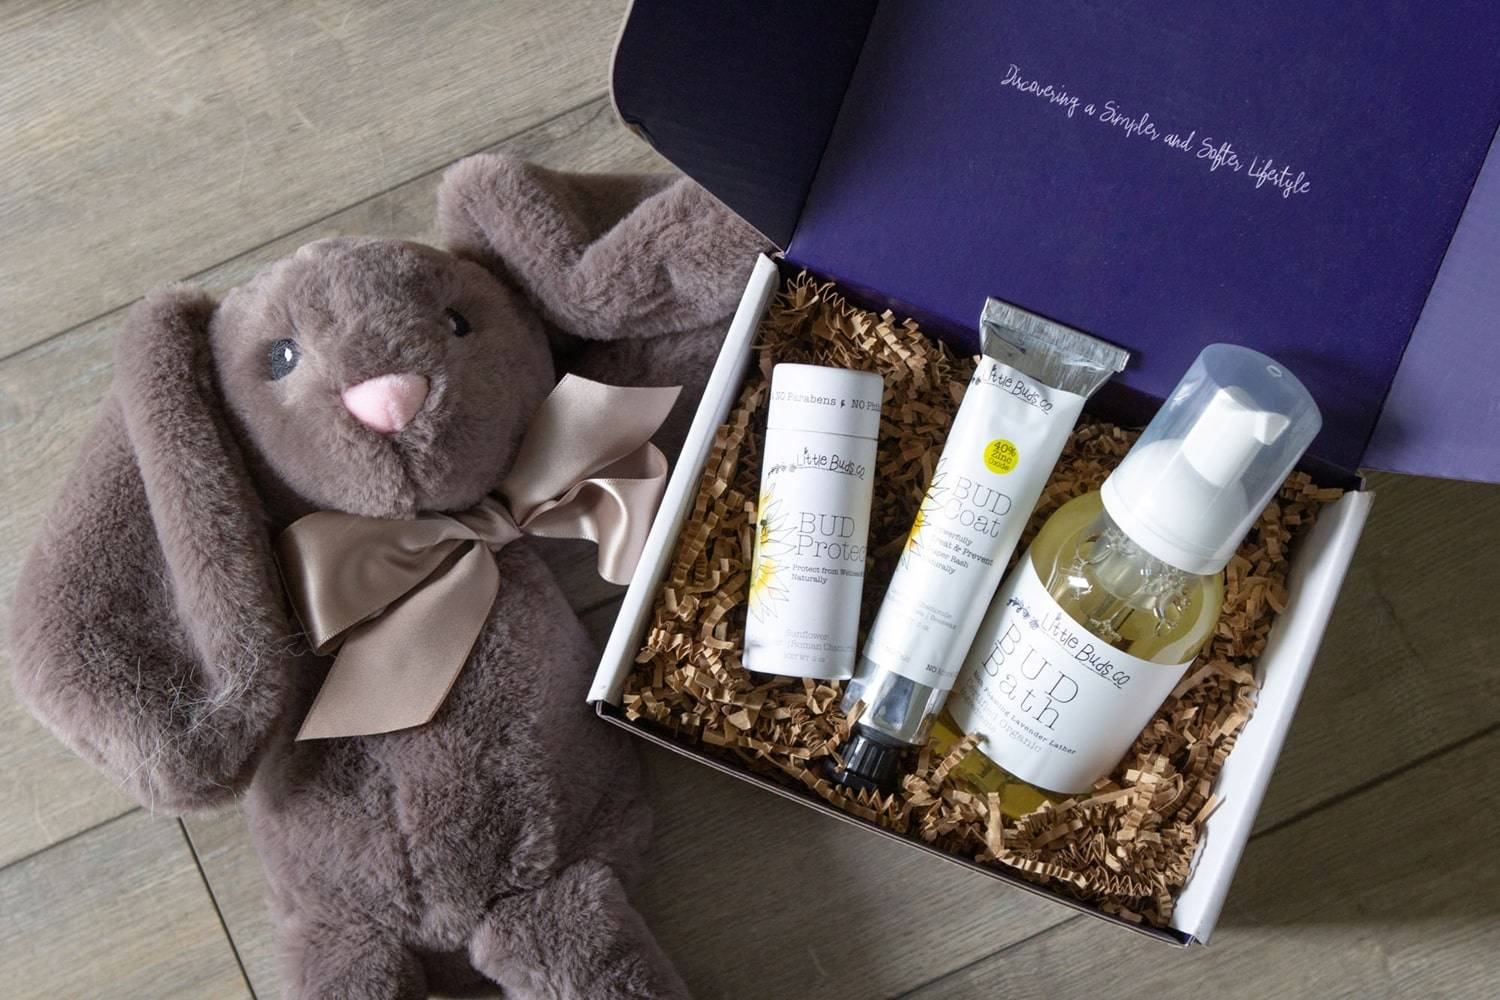 Lavender Gift Sets for Baby with Lotion and More - Lavender-Life.com